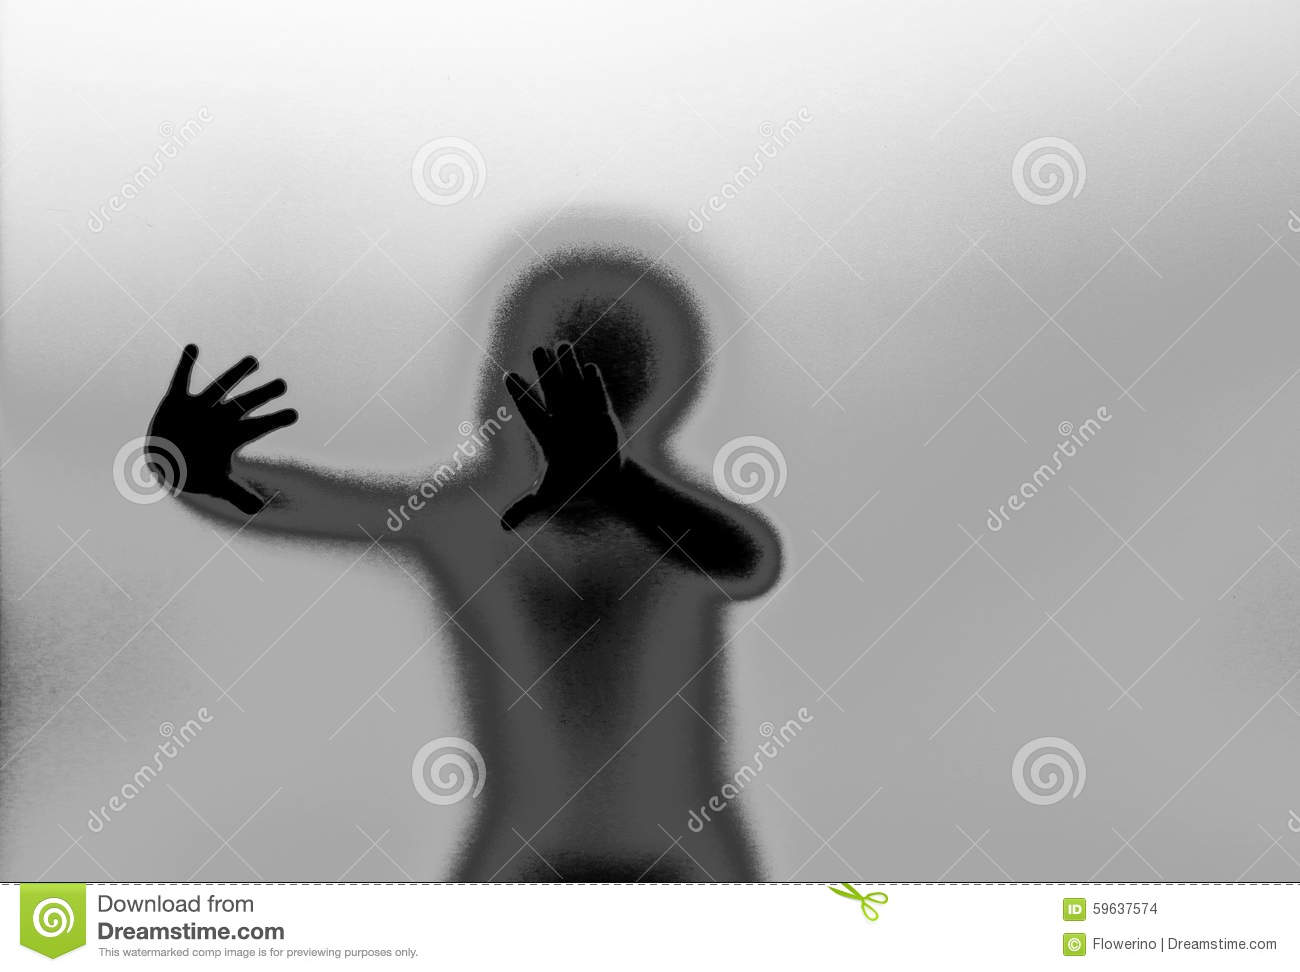 Silhouette and hands behind glass wall